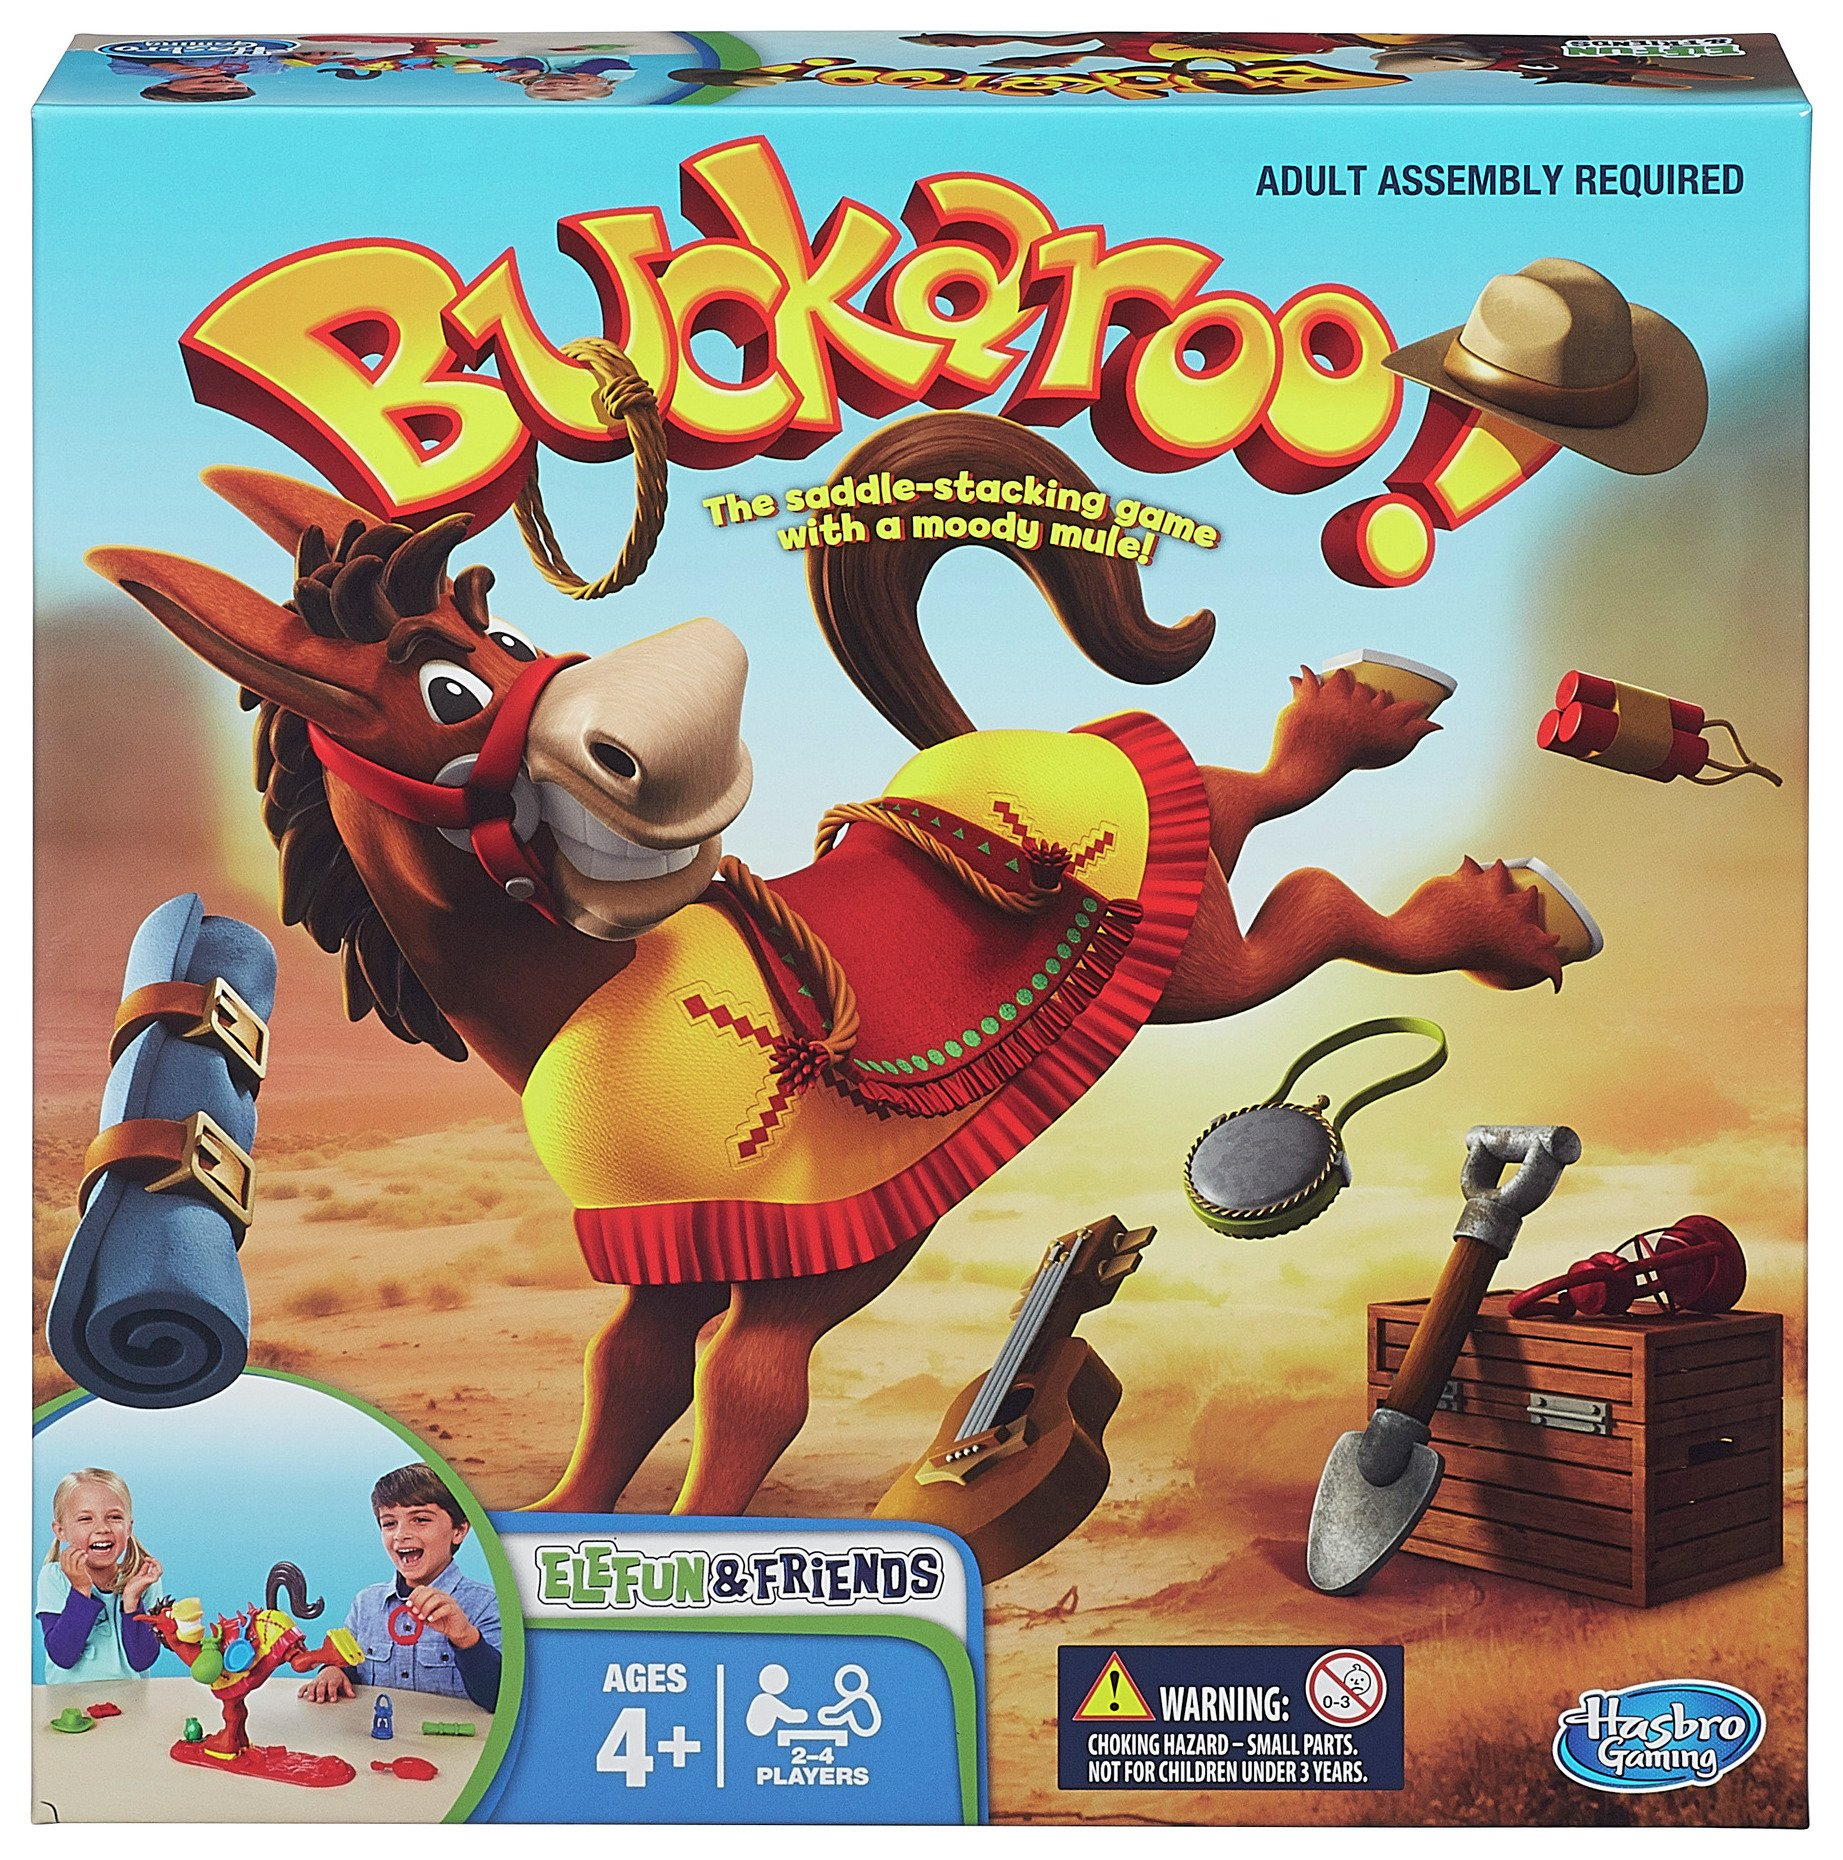 Buckaroo Game from Hasbro Gaming.